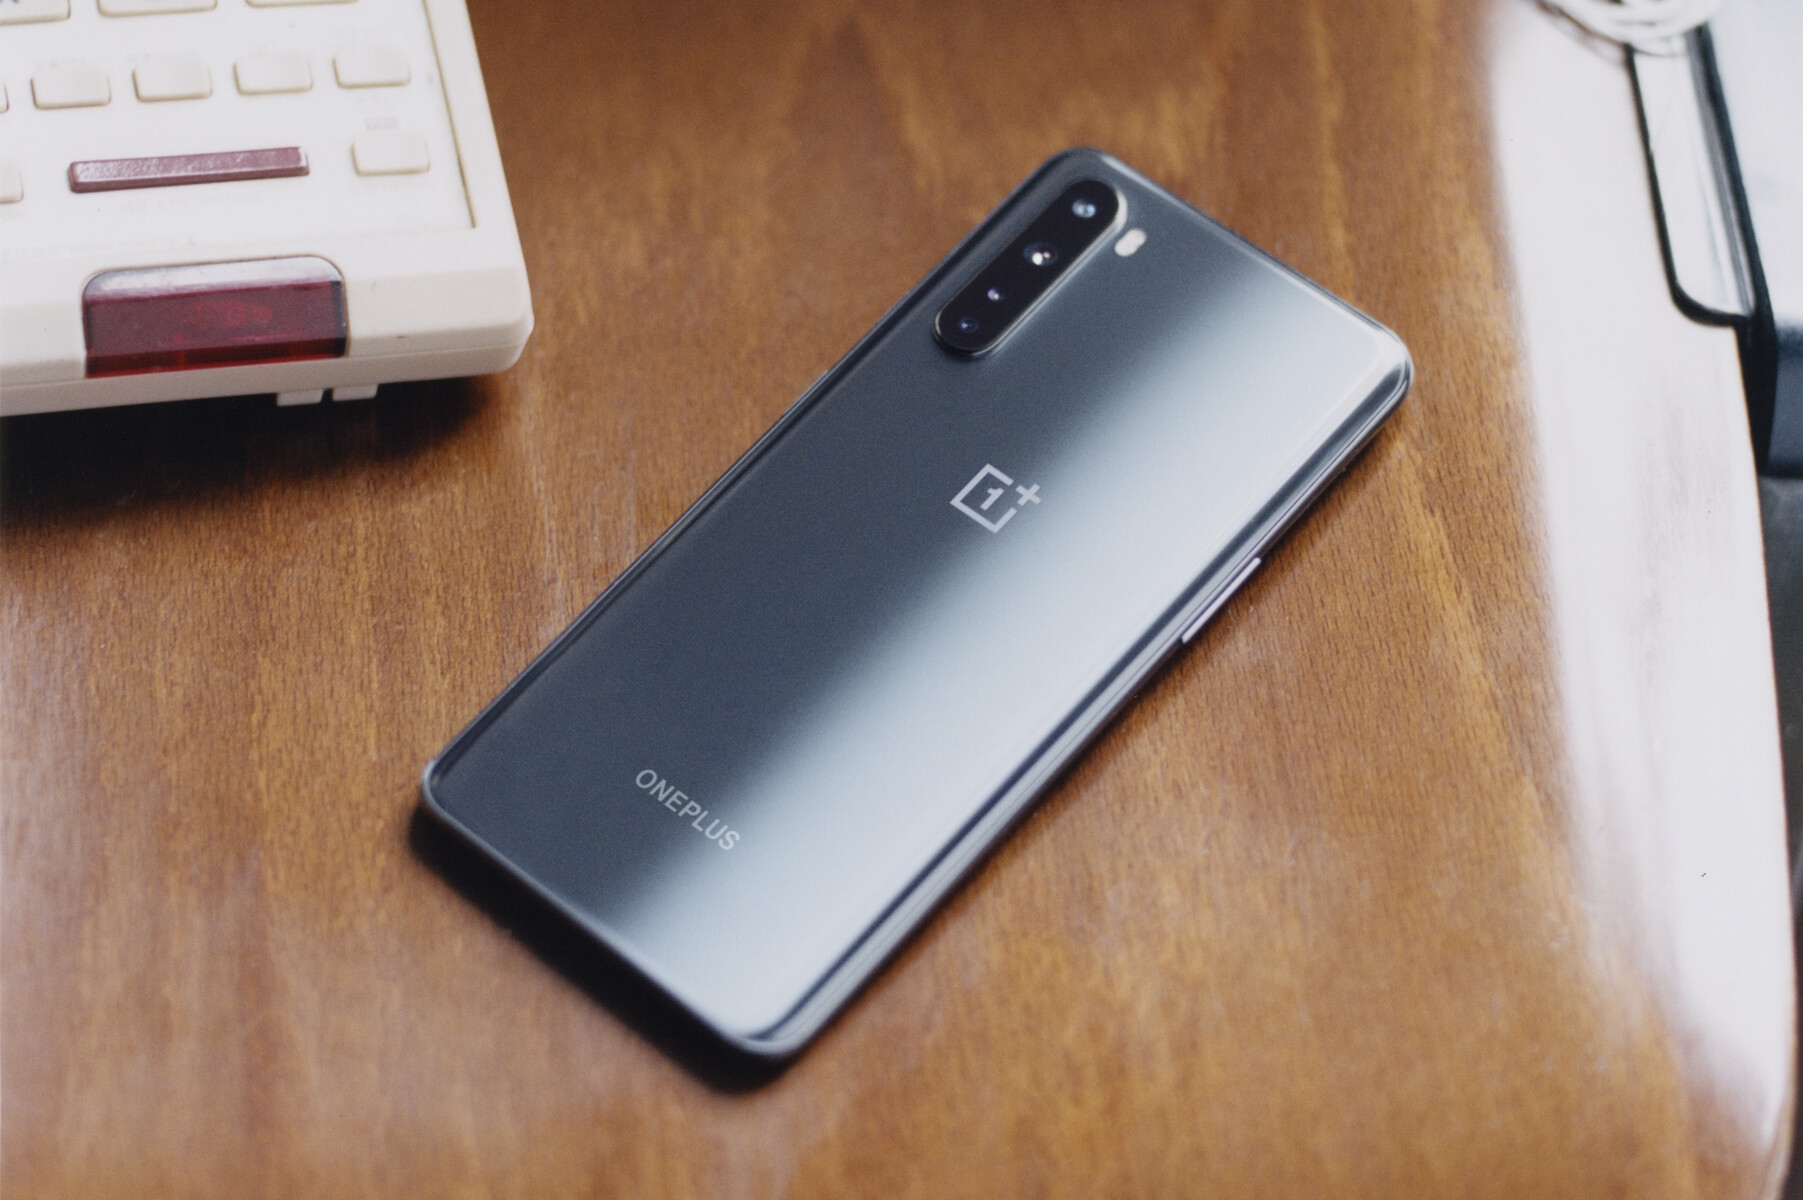 New OnePlus smartphone under Rs 20,000 tipped to launch soon in India